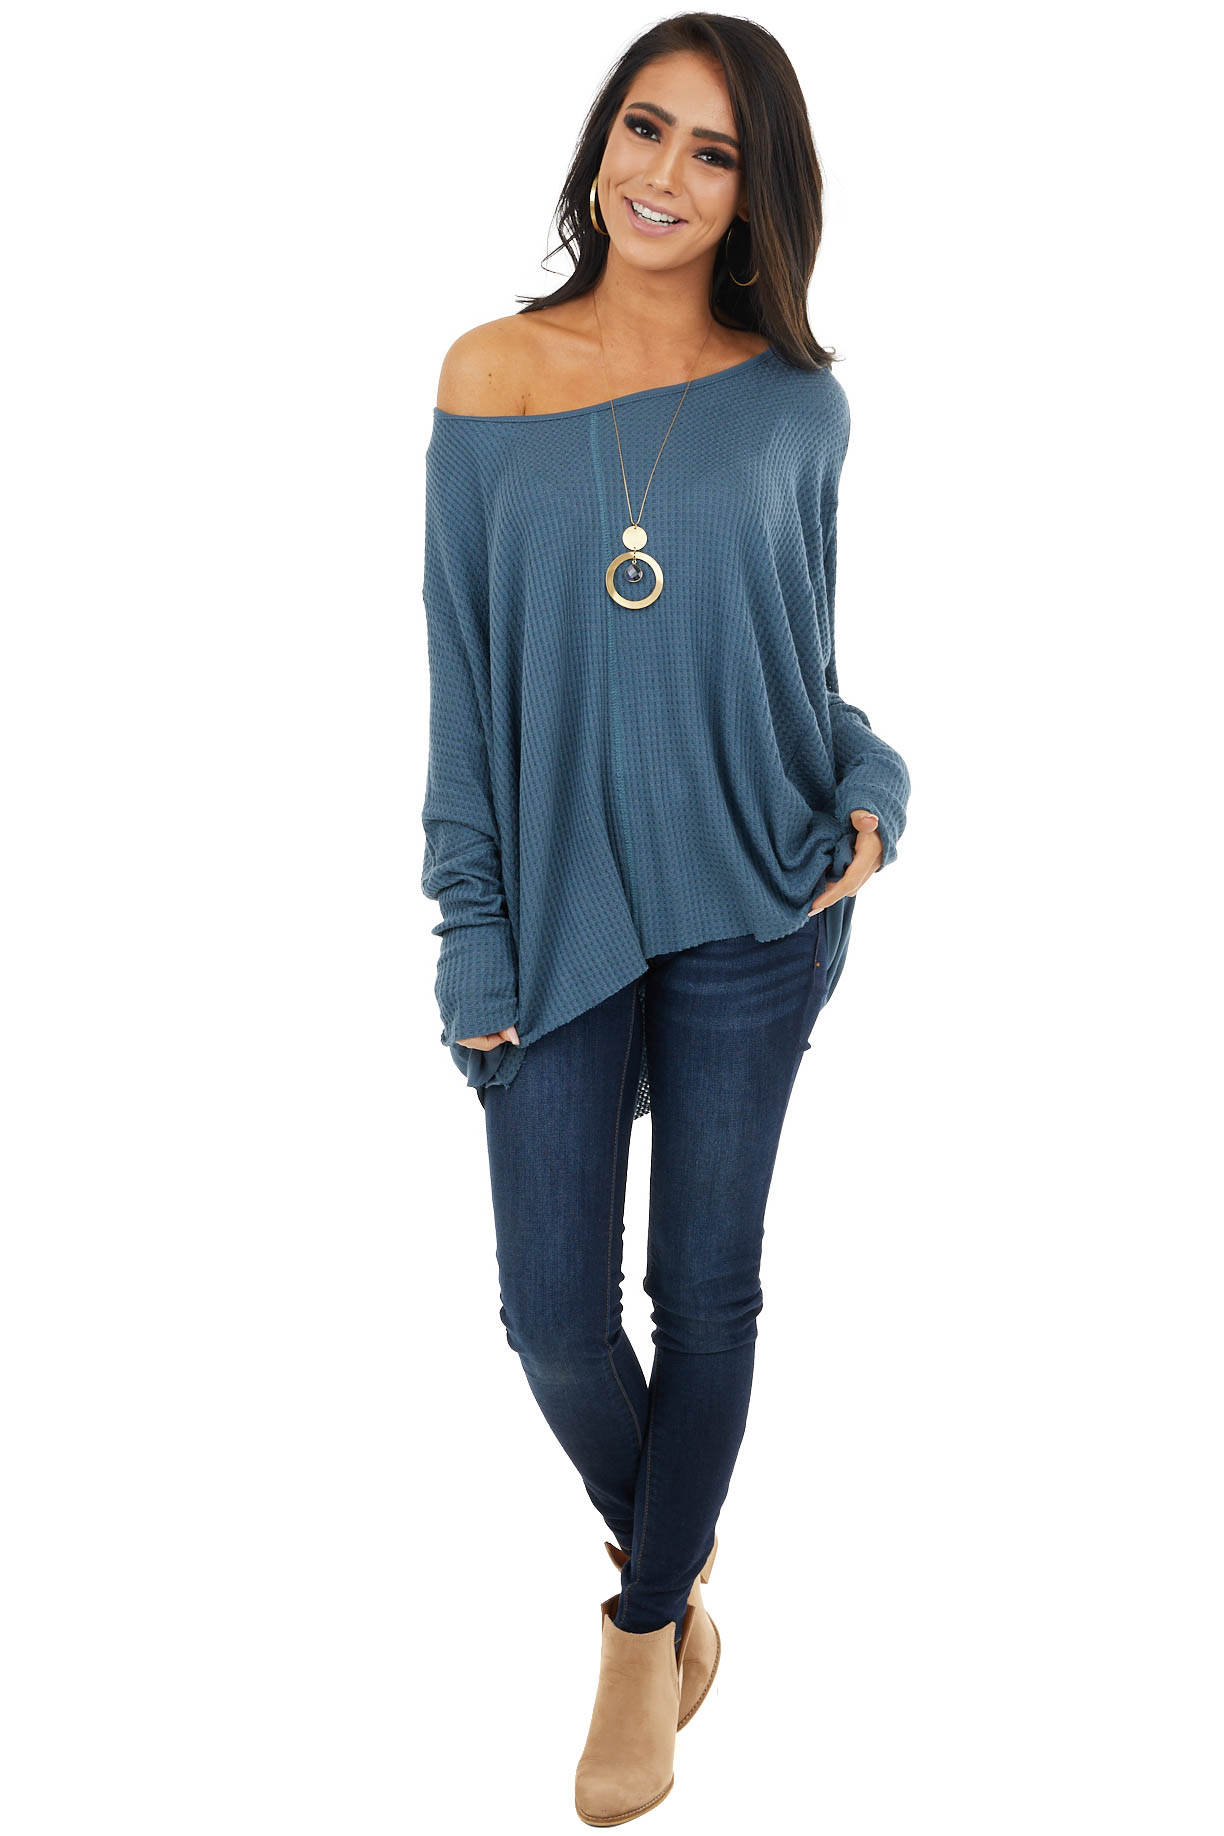 Ocean Blue Oversized Thermal Knit Long Sleeve Top